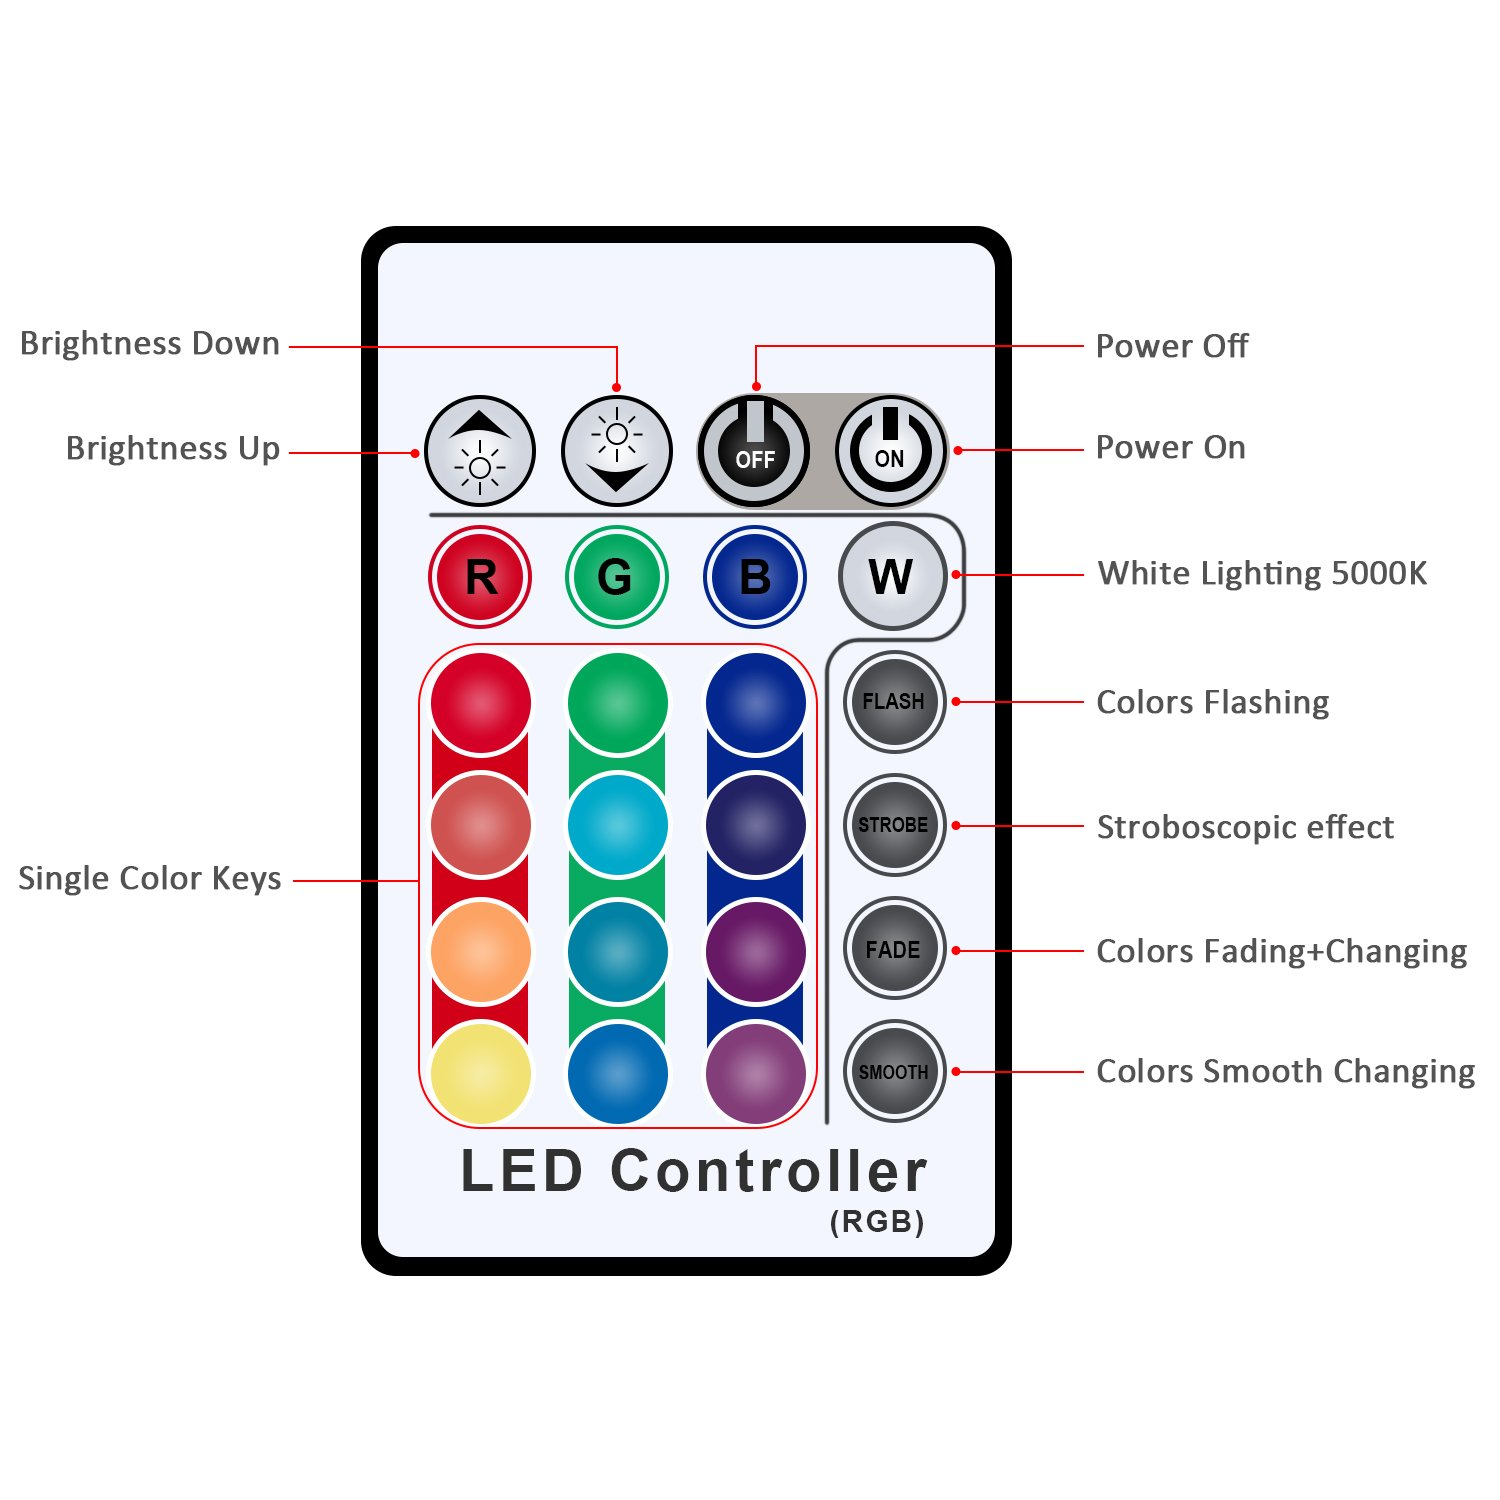 H-TEK 108W RGBW LED Wall Washer Light with RF Remote Controller, Color Changing LED Flood Light for Outdoor/Indoor Lighting Projects Hotels, Resorts, Casinos, Billboards, Building Decorations, Parties by H-TEK (Image #8)